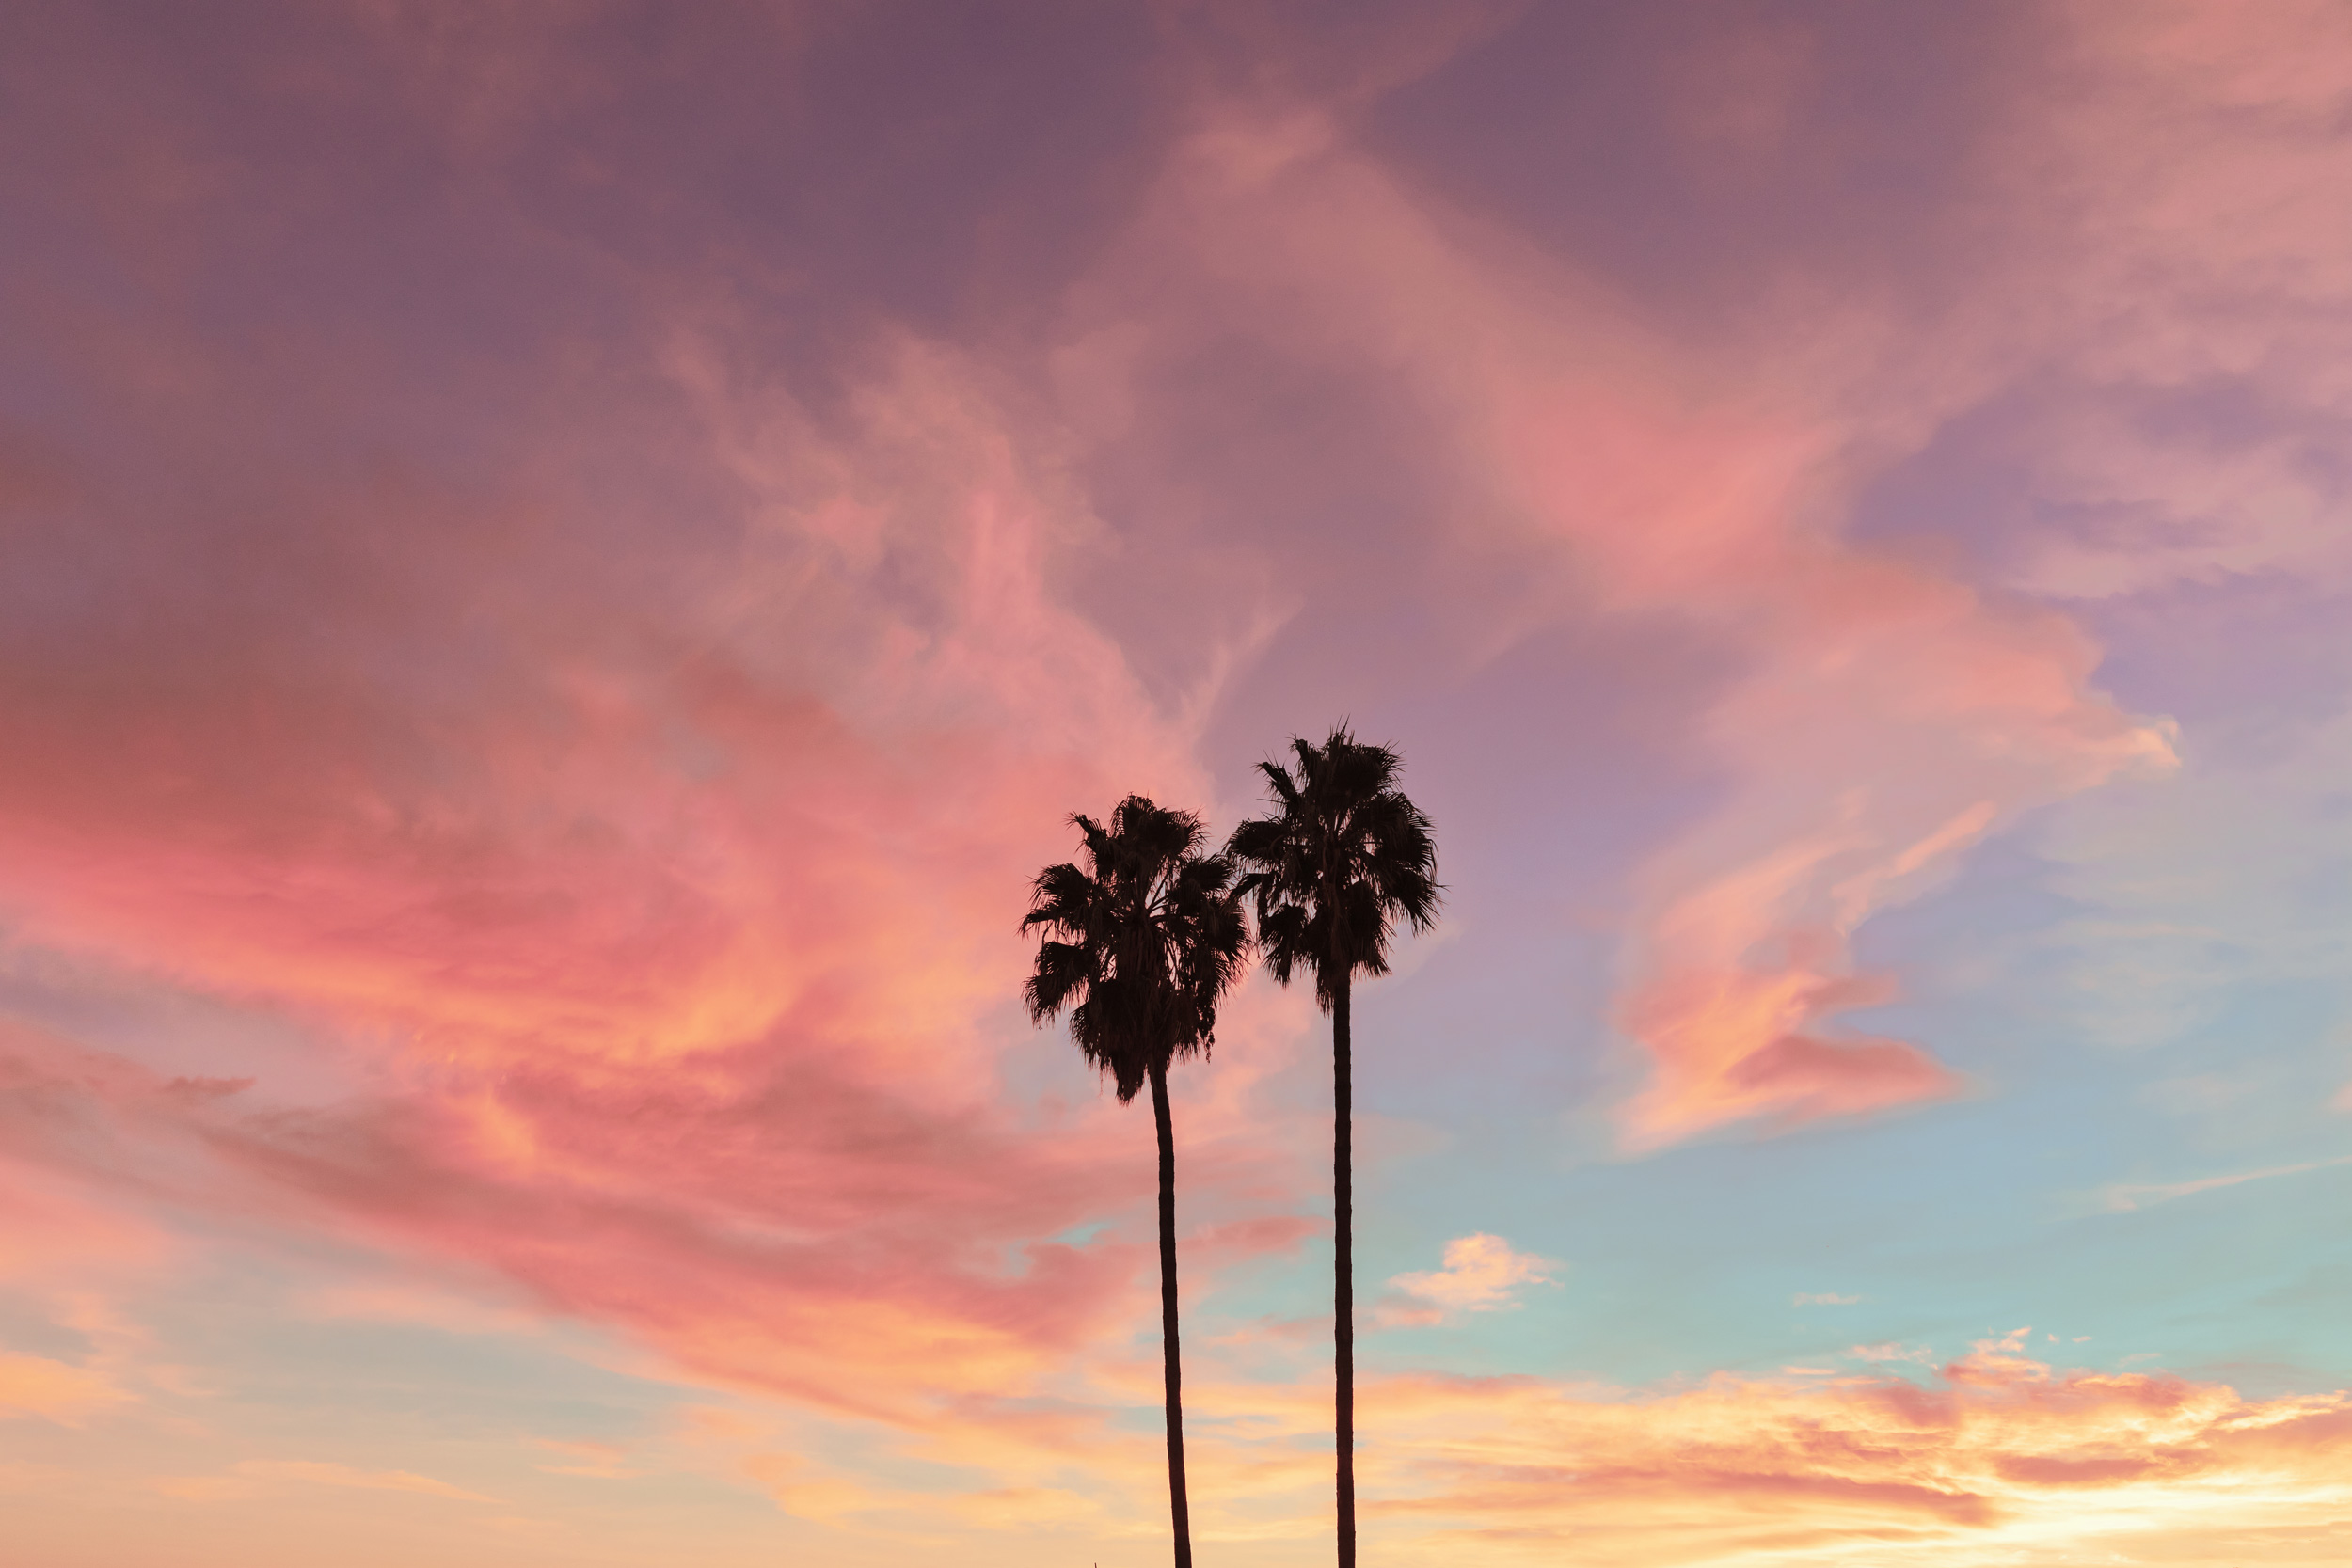 Palm trees with a sunset. Kimberly Genevieve lifestyle photographer Los Angeles